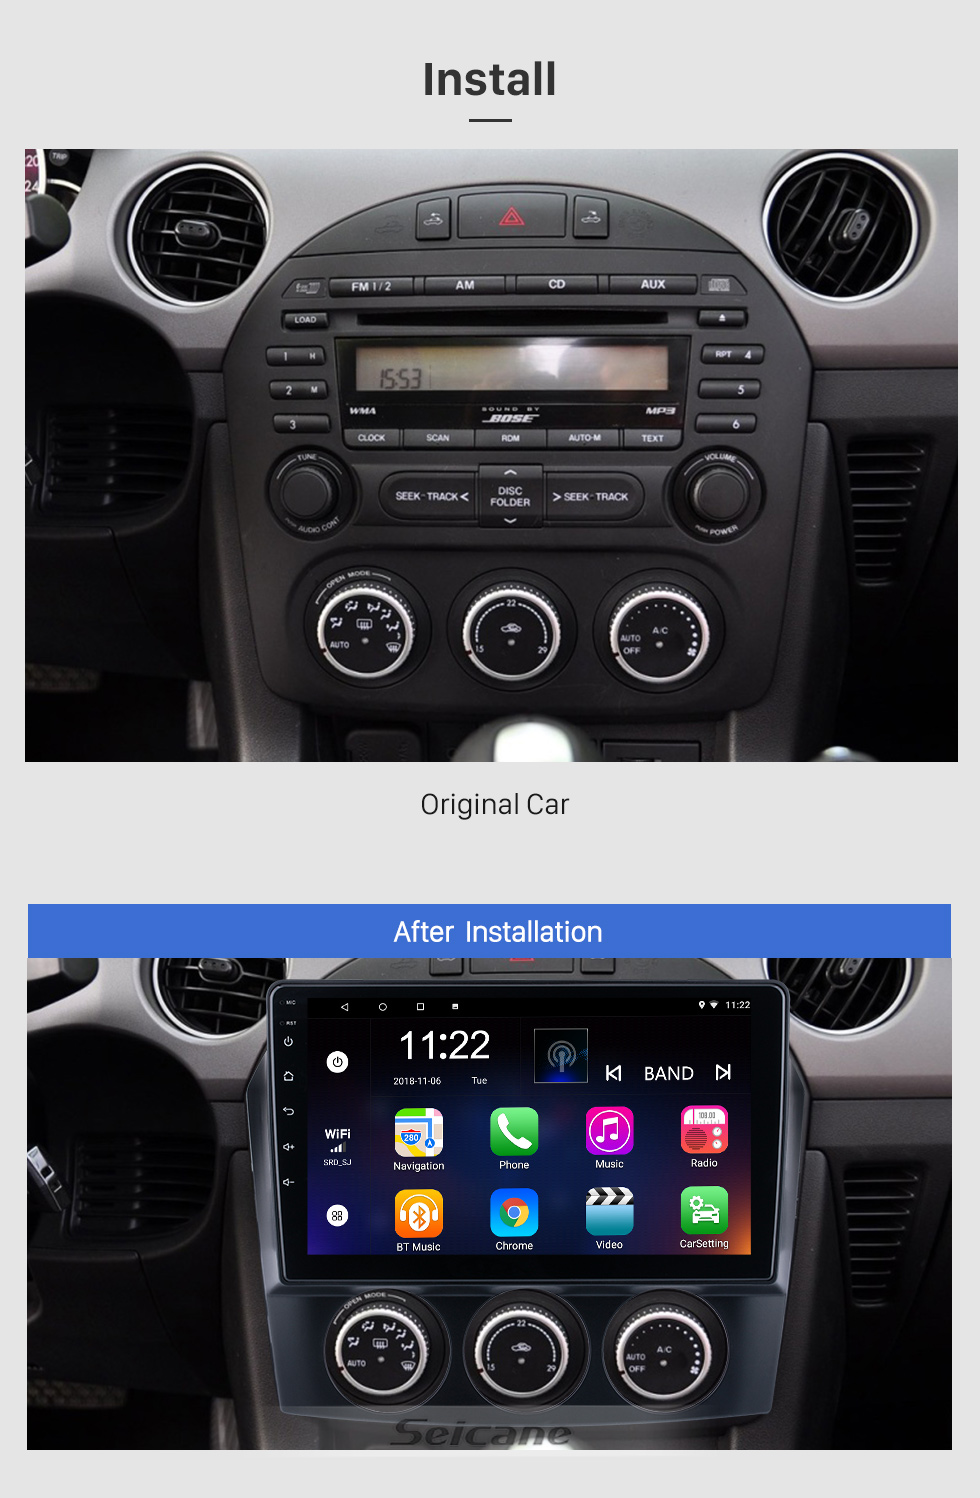 Seicane Andriod 10.0 HD Touchsreen 9 inch 2009 Mazda MX-5 GPS Navigation System with Bluetooth support Carplay